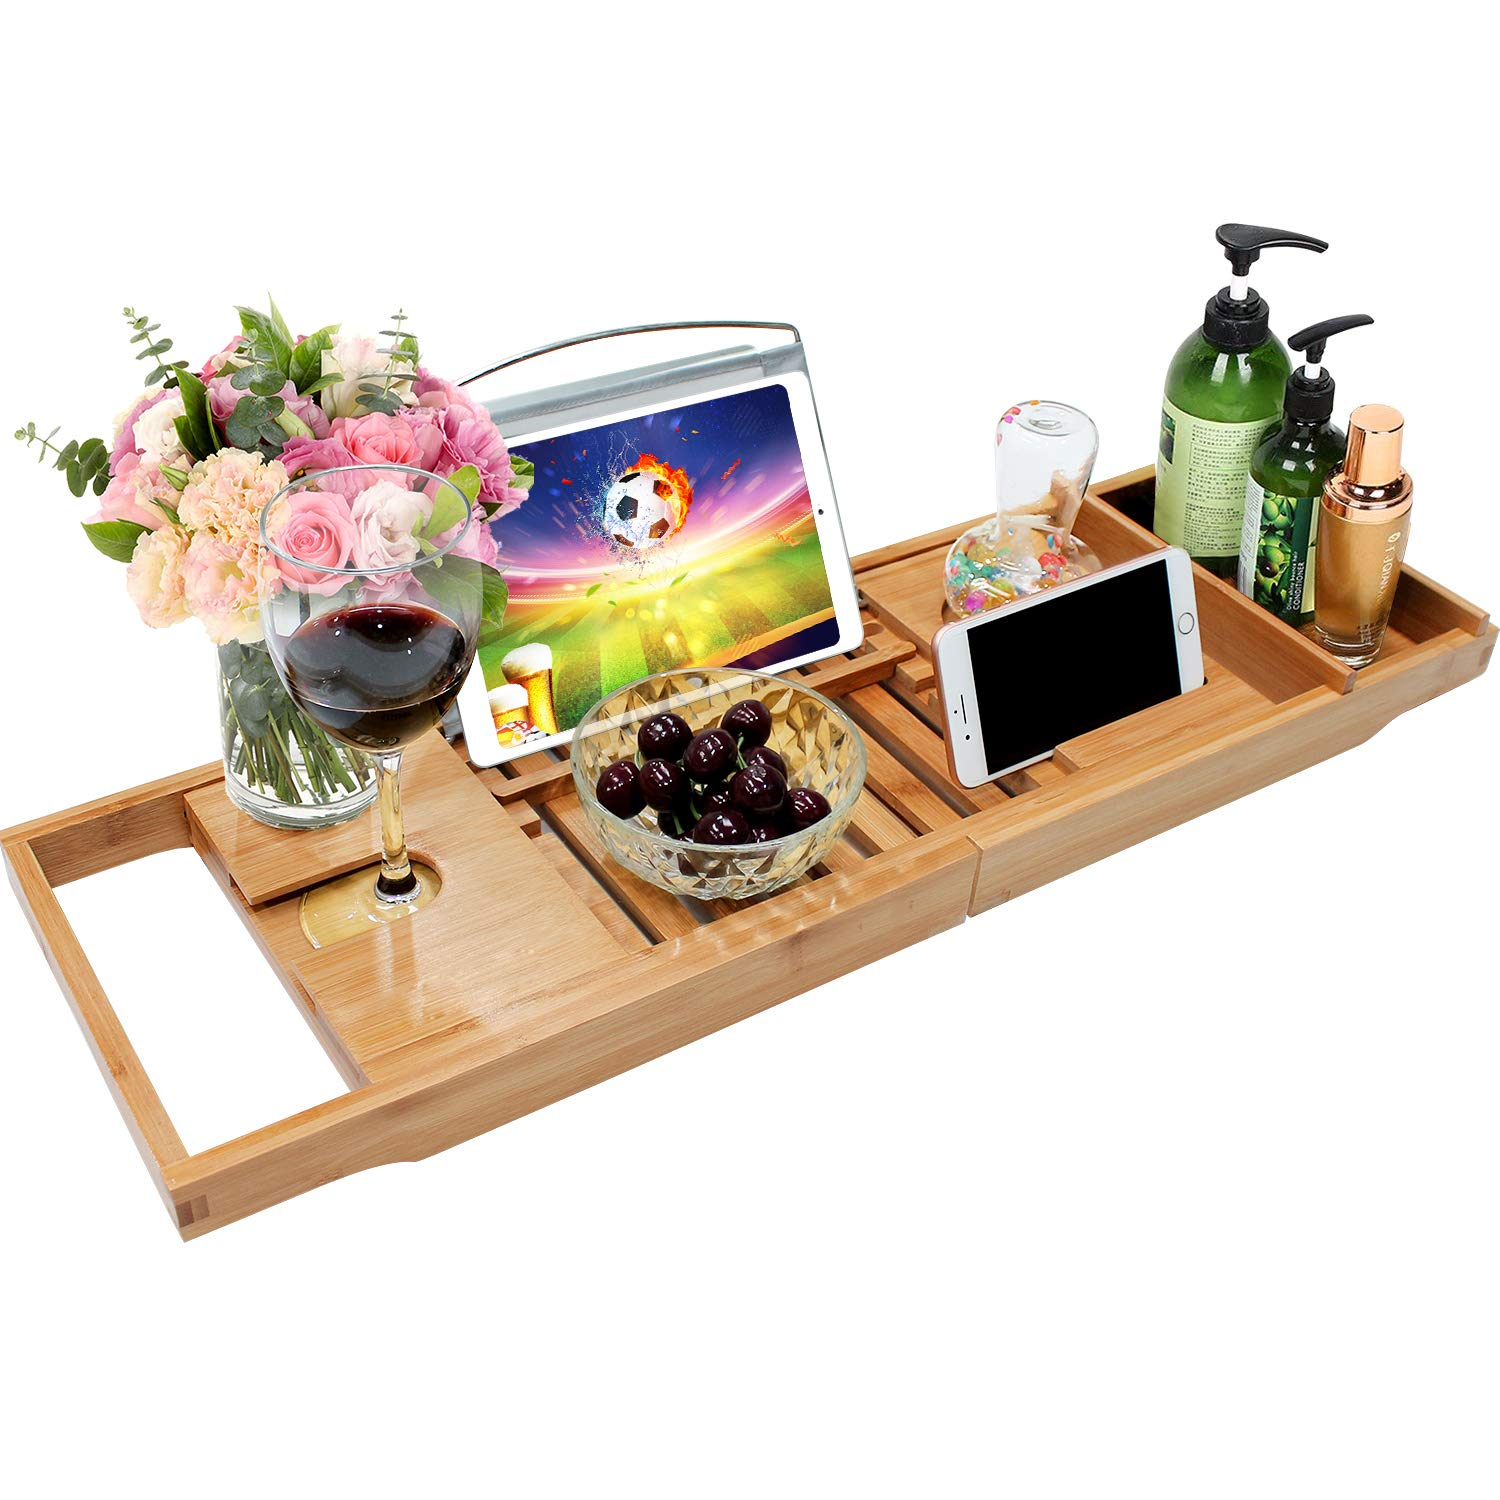 Bamboo Bathtub Caddy Tray Bathroom Organizer with Expandable Sides Holder for Book Glass Towel Good-Love